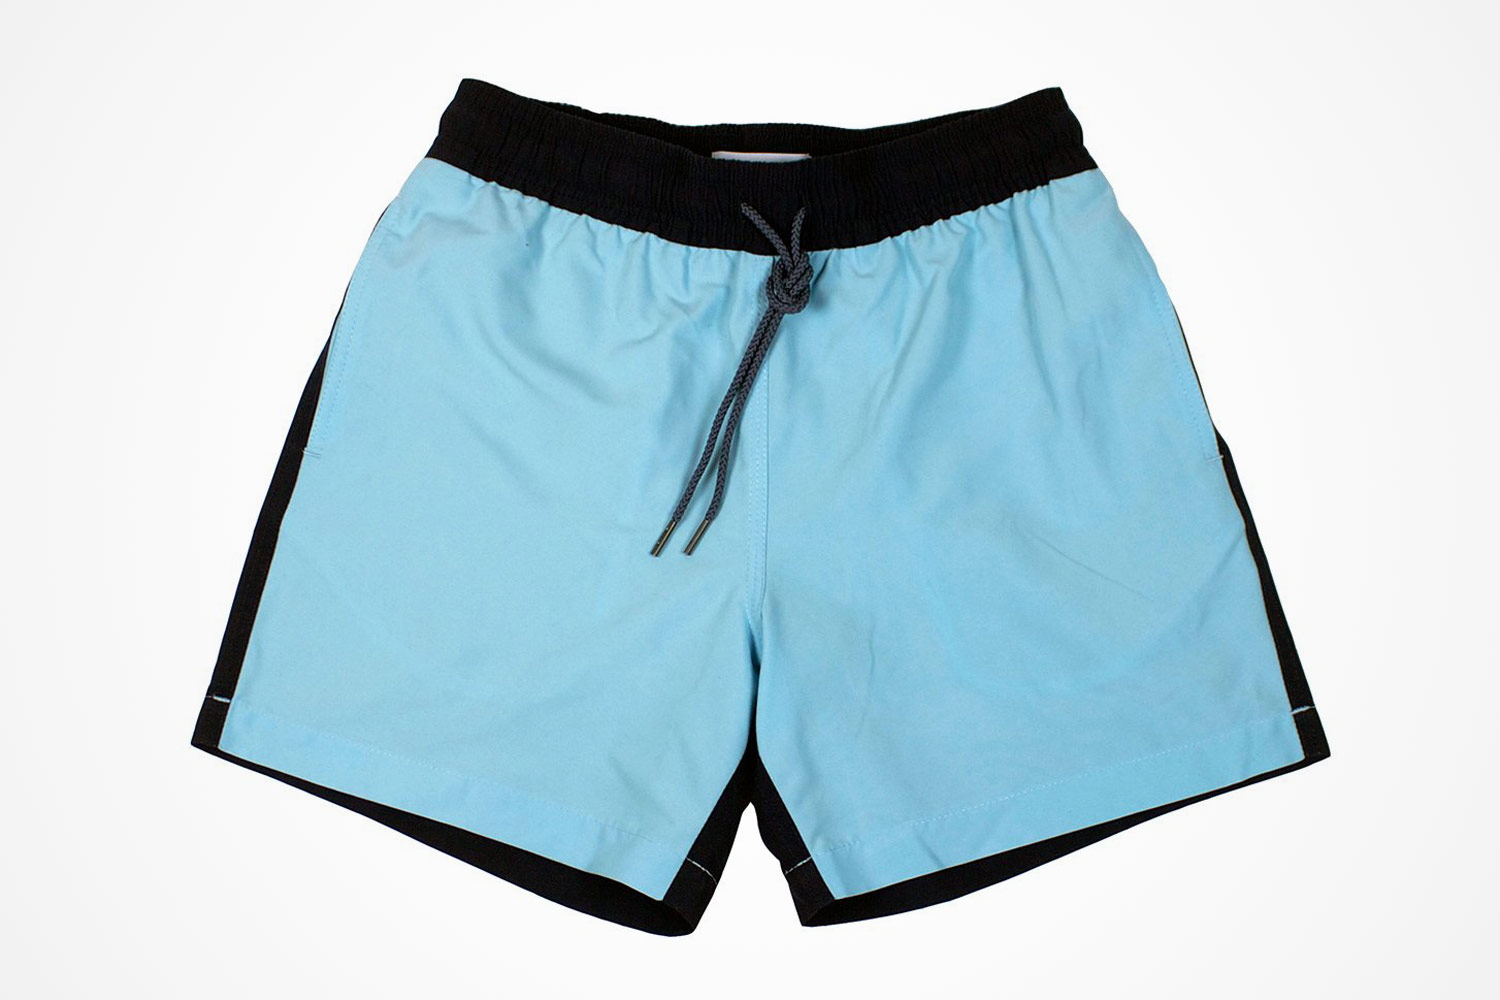 b729358ee7 The Coolest Swim Shorts For The Hottest Days - HEY GENTS